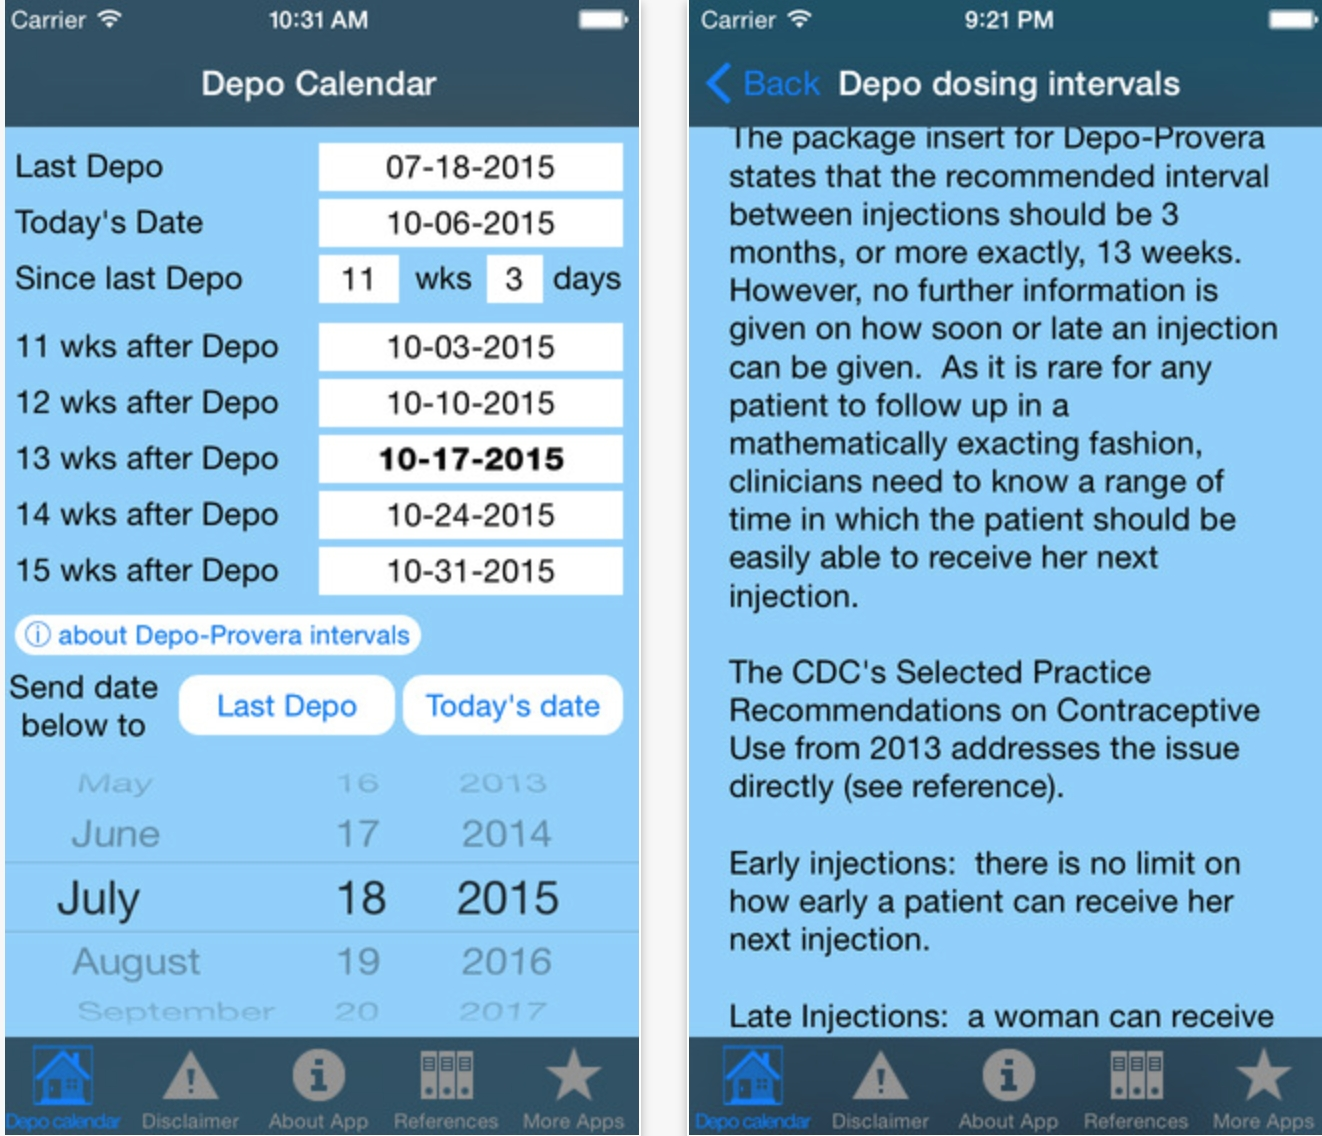 Depo Calendar App Could Significantly Improve Contraception pertaining to Depo Injection Schedule For A Whole Year